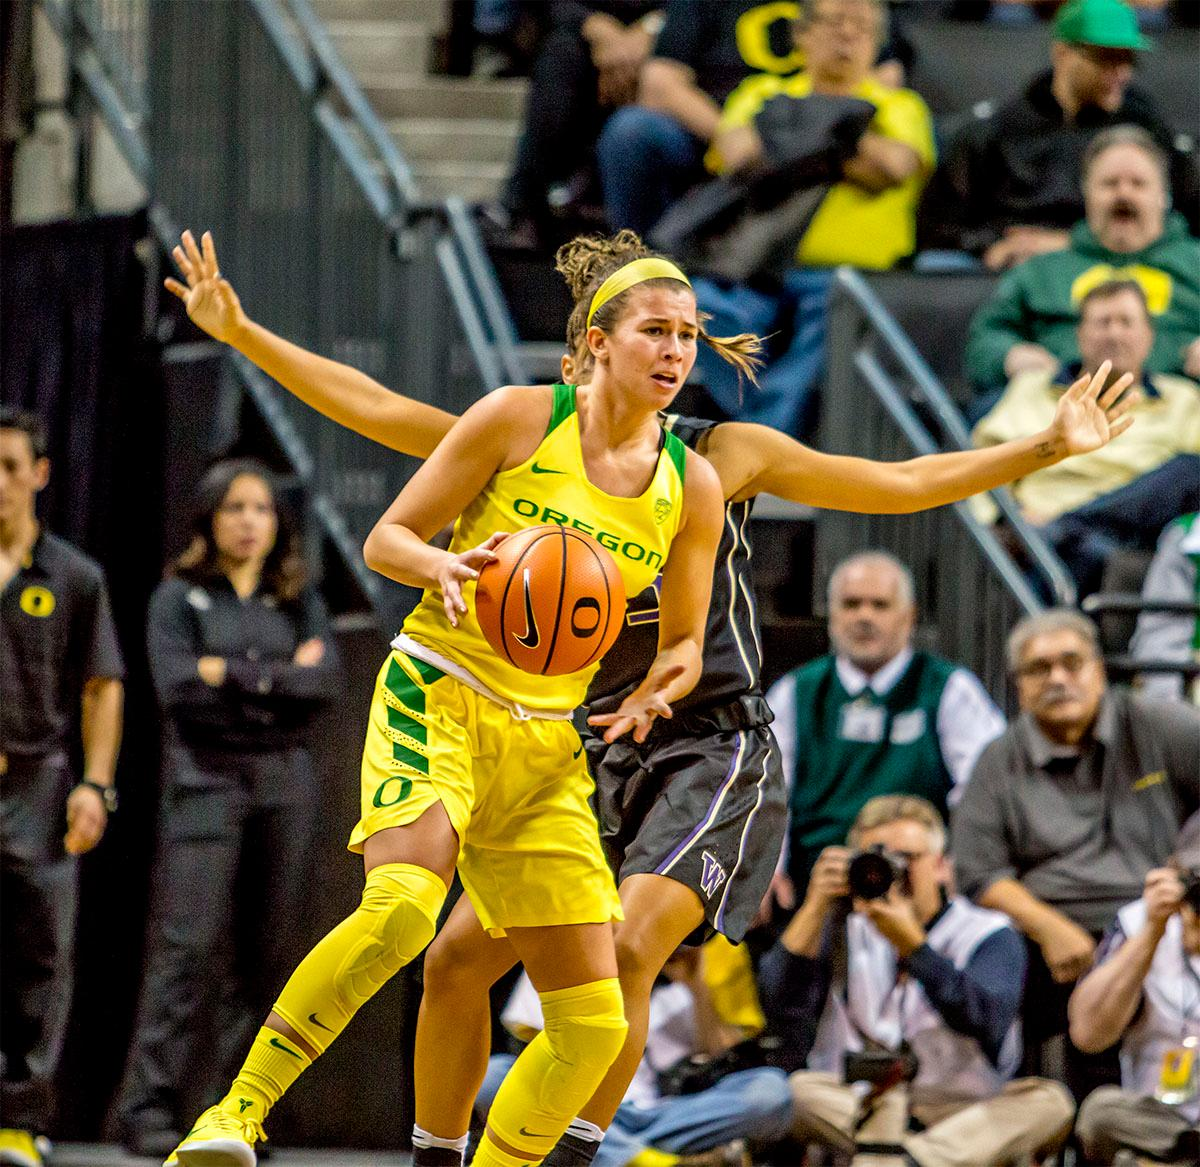 The Duck's Lexi bando (#10) looks for a teammate to pass too. The Oregon Ducks defeated the Washington Huskies 94-83 on Sunday at Matthew Knight Arena. The victory was Head Coach Kelly Graves' 500th career win. Sabrina Ionescu also set the new NCAA all time record of 8 triple doubles in just 48 games. The previous record was 7 triple doubles in 124 games, held by Susie McConnell at Penn State. The Ducks will next face off against USC on Friday January 5th in Los Angeles. Photo by Rhianna Gelhart, Oregon News Lab